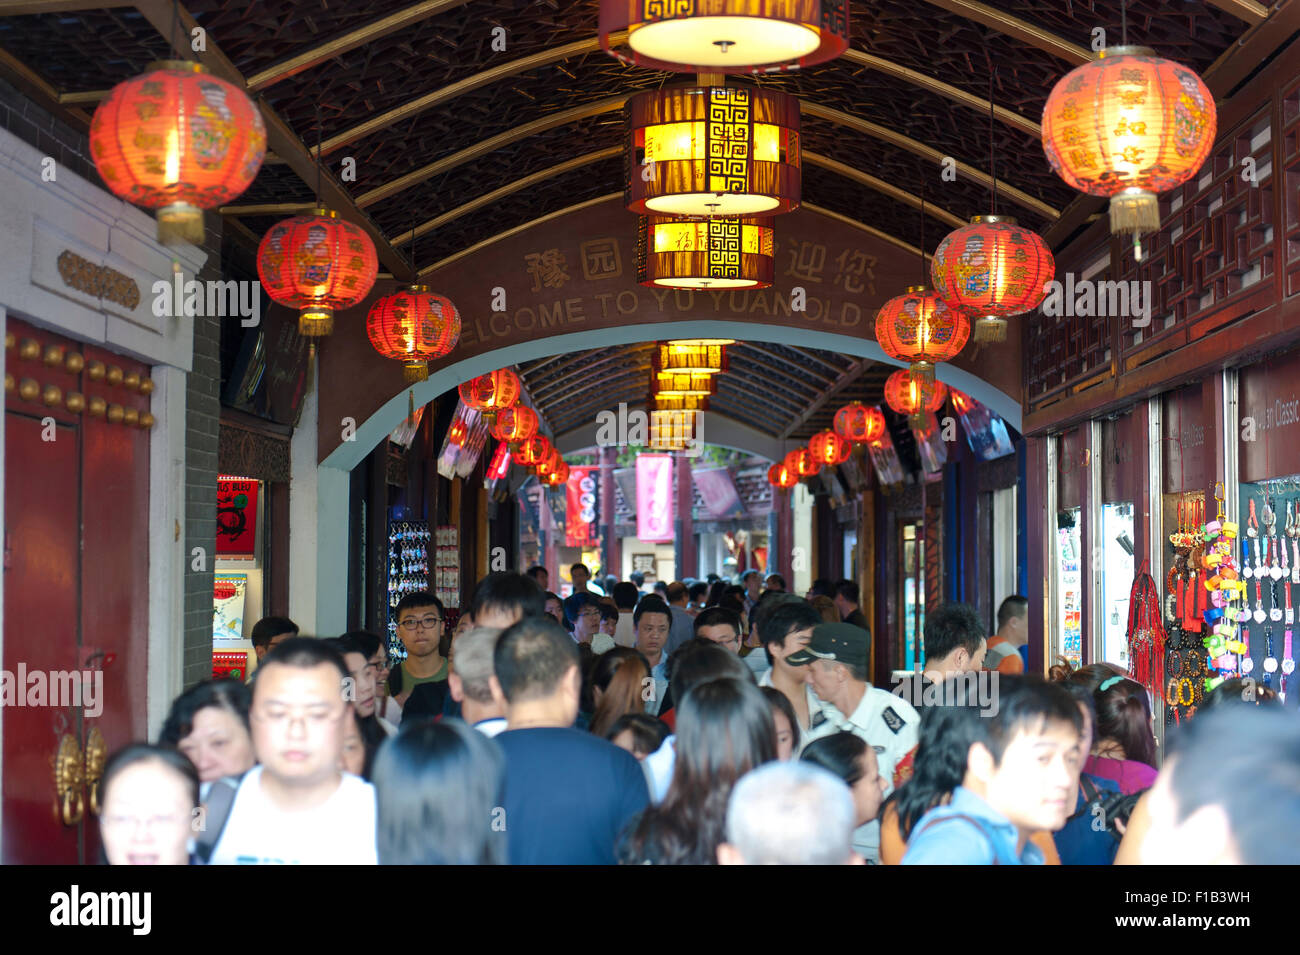 Les gens de passage de Yu Yuan Old Street, Shanghai, Chine Photo Stock